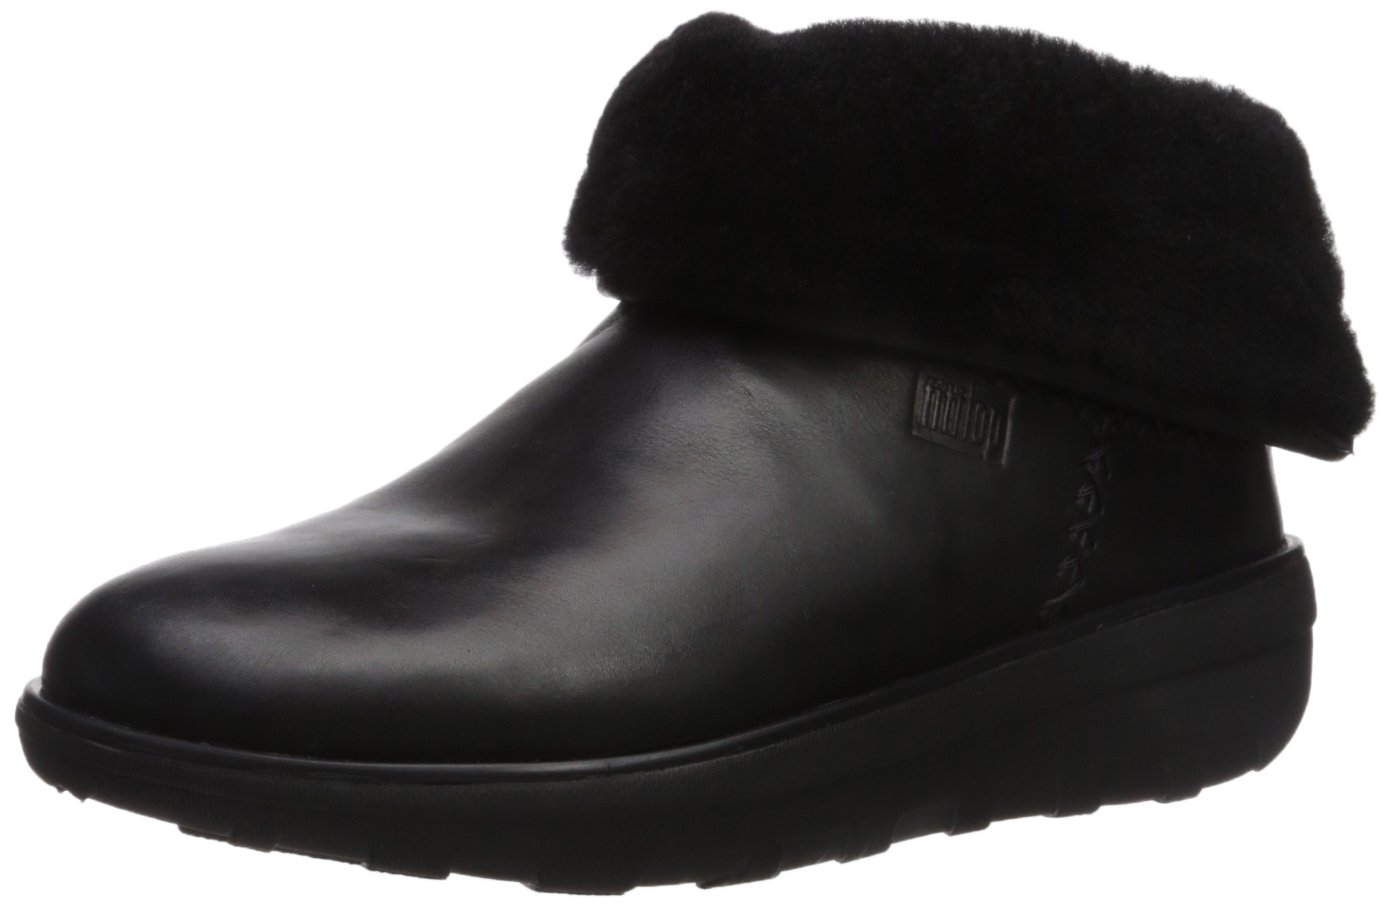 FitFlop Women's Mukluk Shorty II Boot, Black, 7 M US